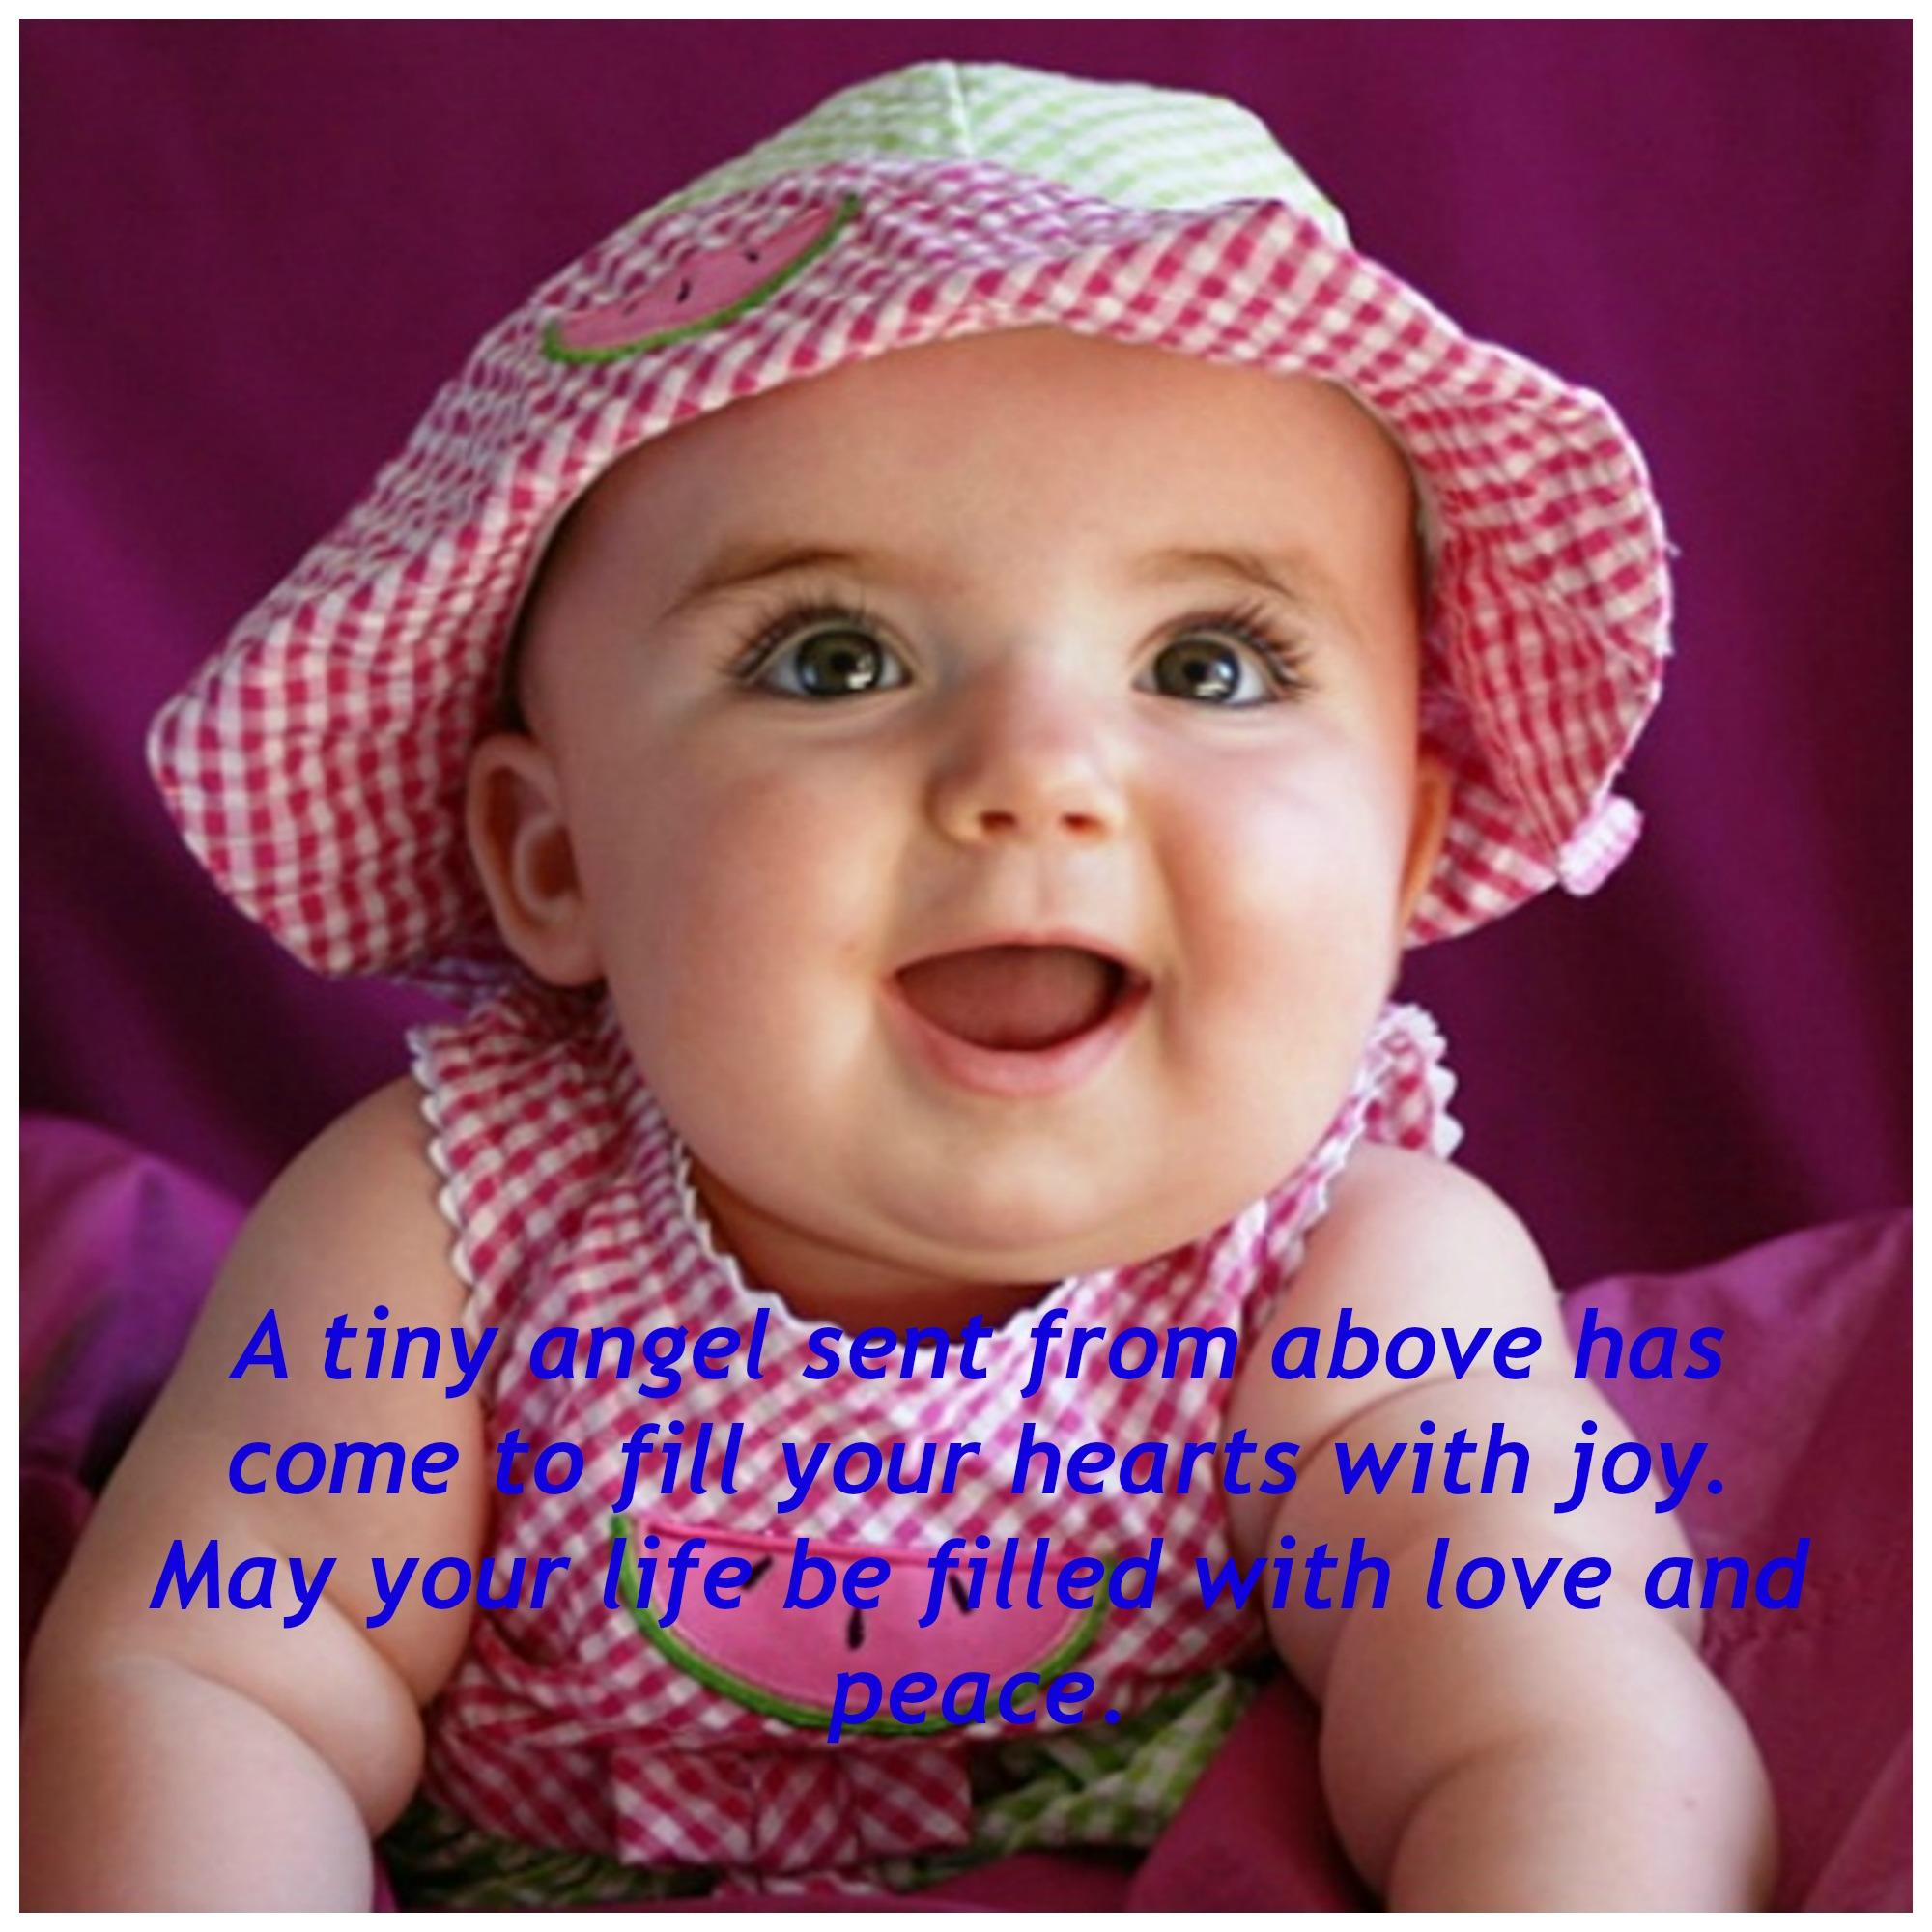 50 islamic birthday and newborn baby wishes messages quotes m4hsunfo